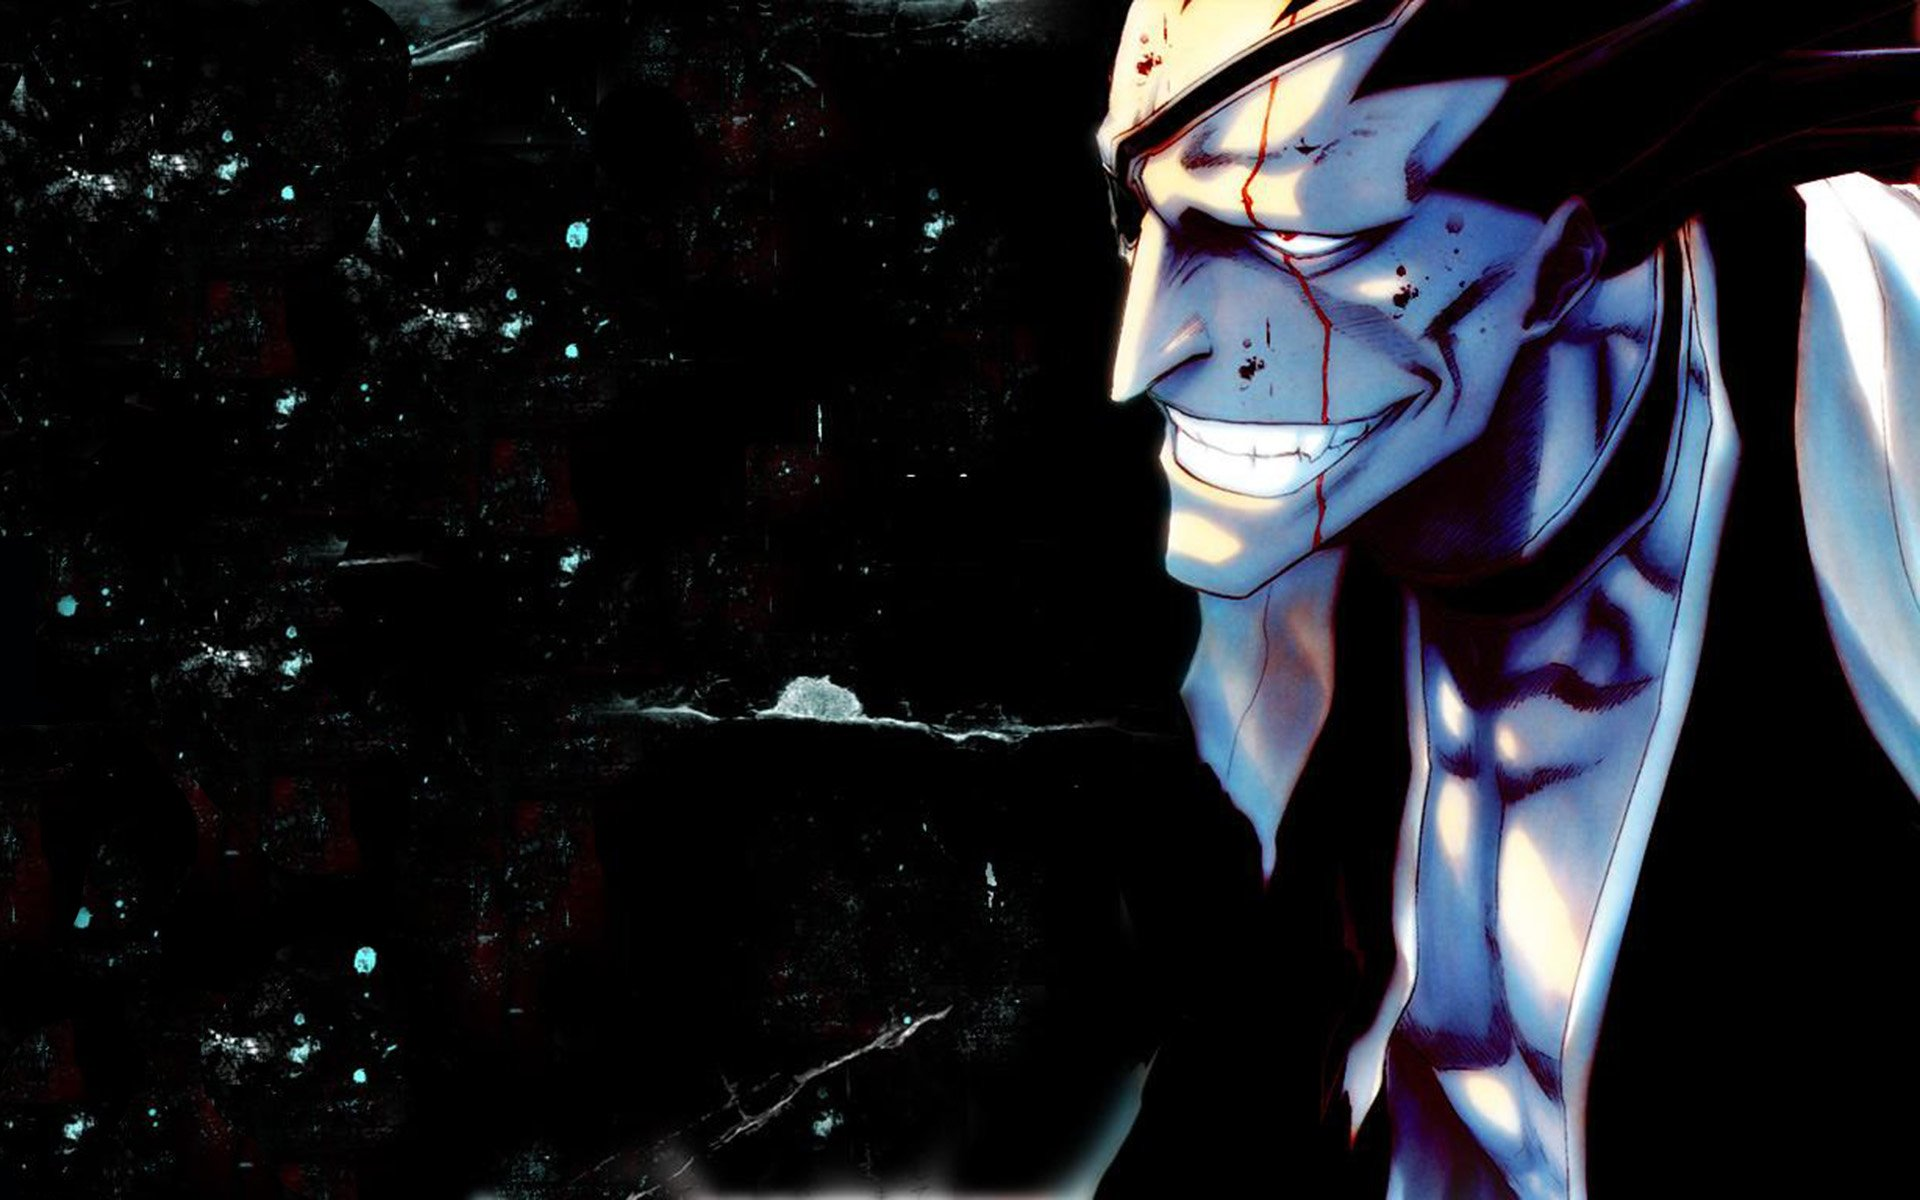 Anime - Bleach  Kenpachi Zaraki Wallpaper